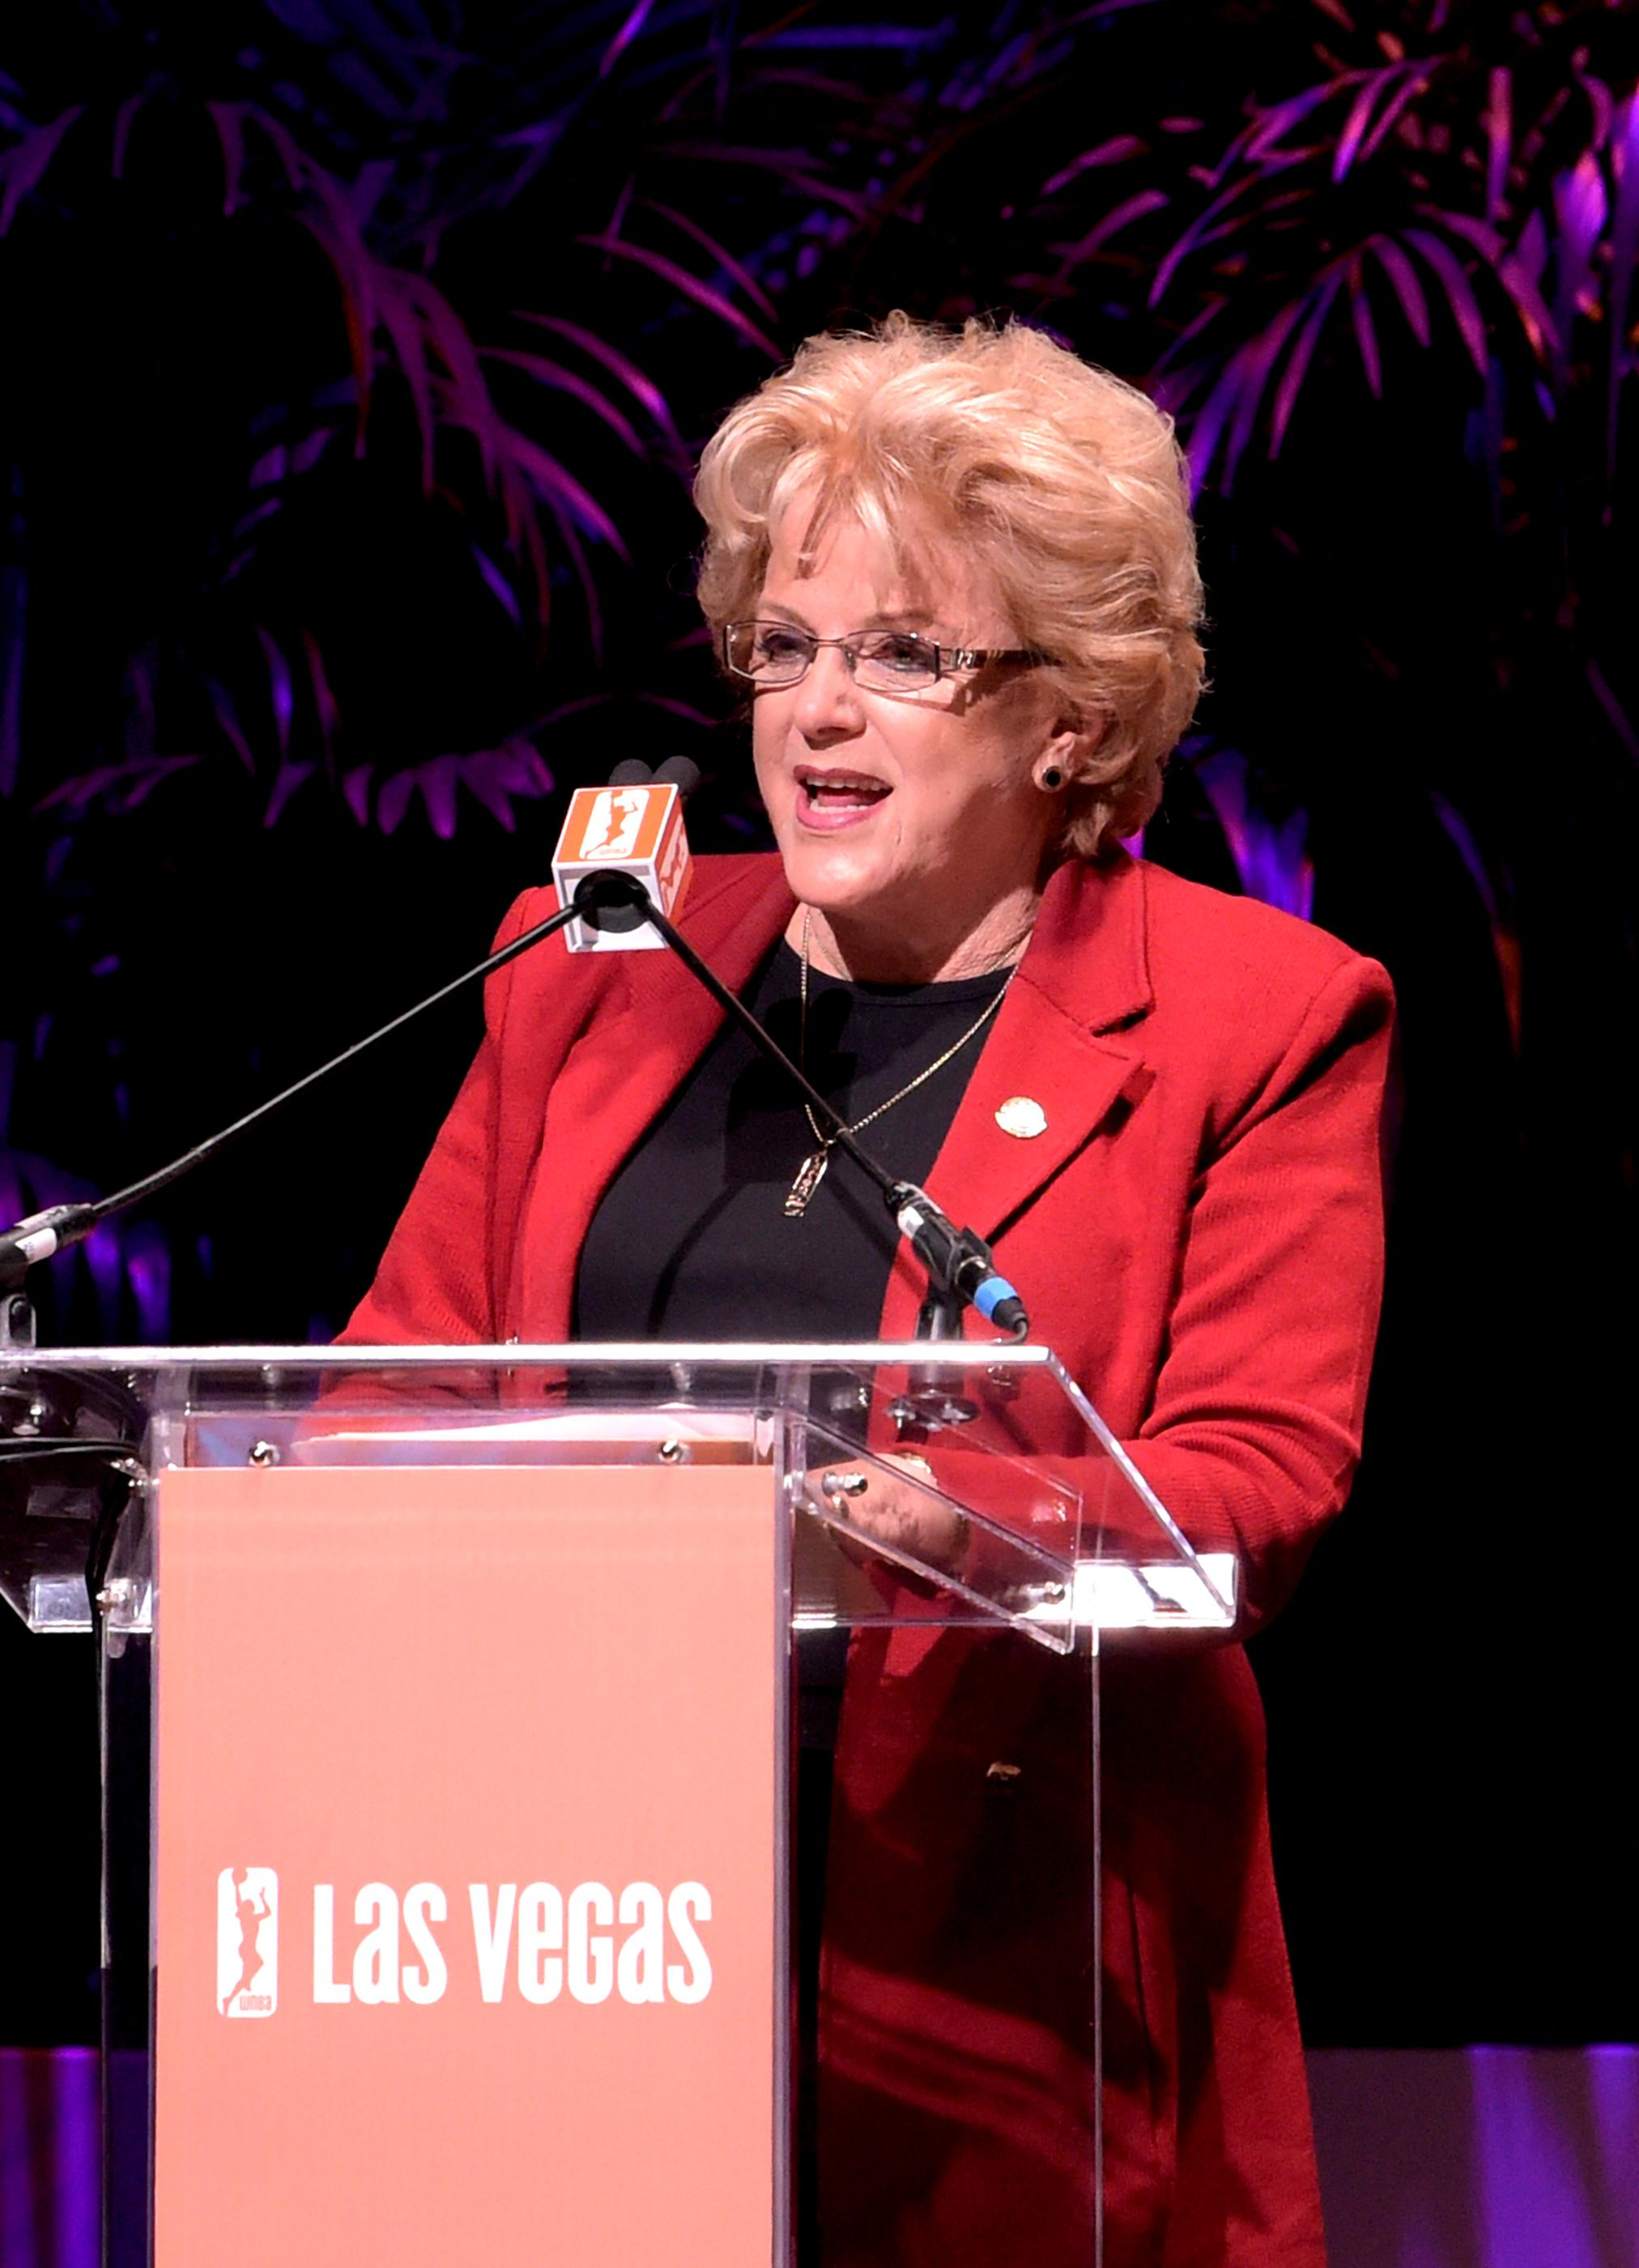 Carolyn G. Goodman Mayor of Las Vegas speaking at the press conference announcing the WNBA Las Vegas Aces as the newest professional sports franchise in Las Vegas at Mandalay Bay. Monday, December 11, 2017. CREDIT: Glenn Pinkerton/Las Vegas News Bureau